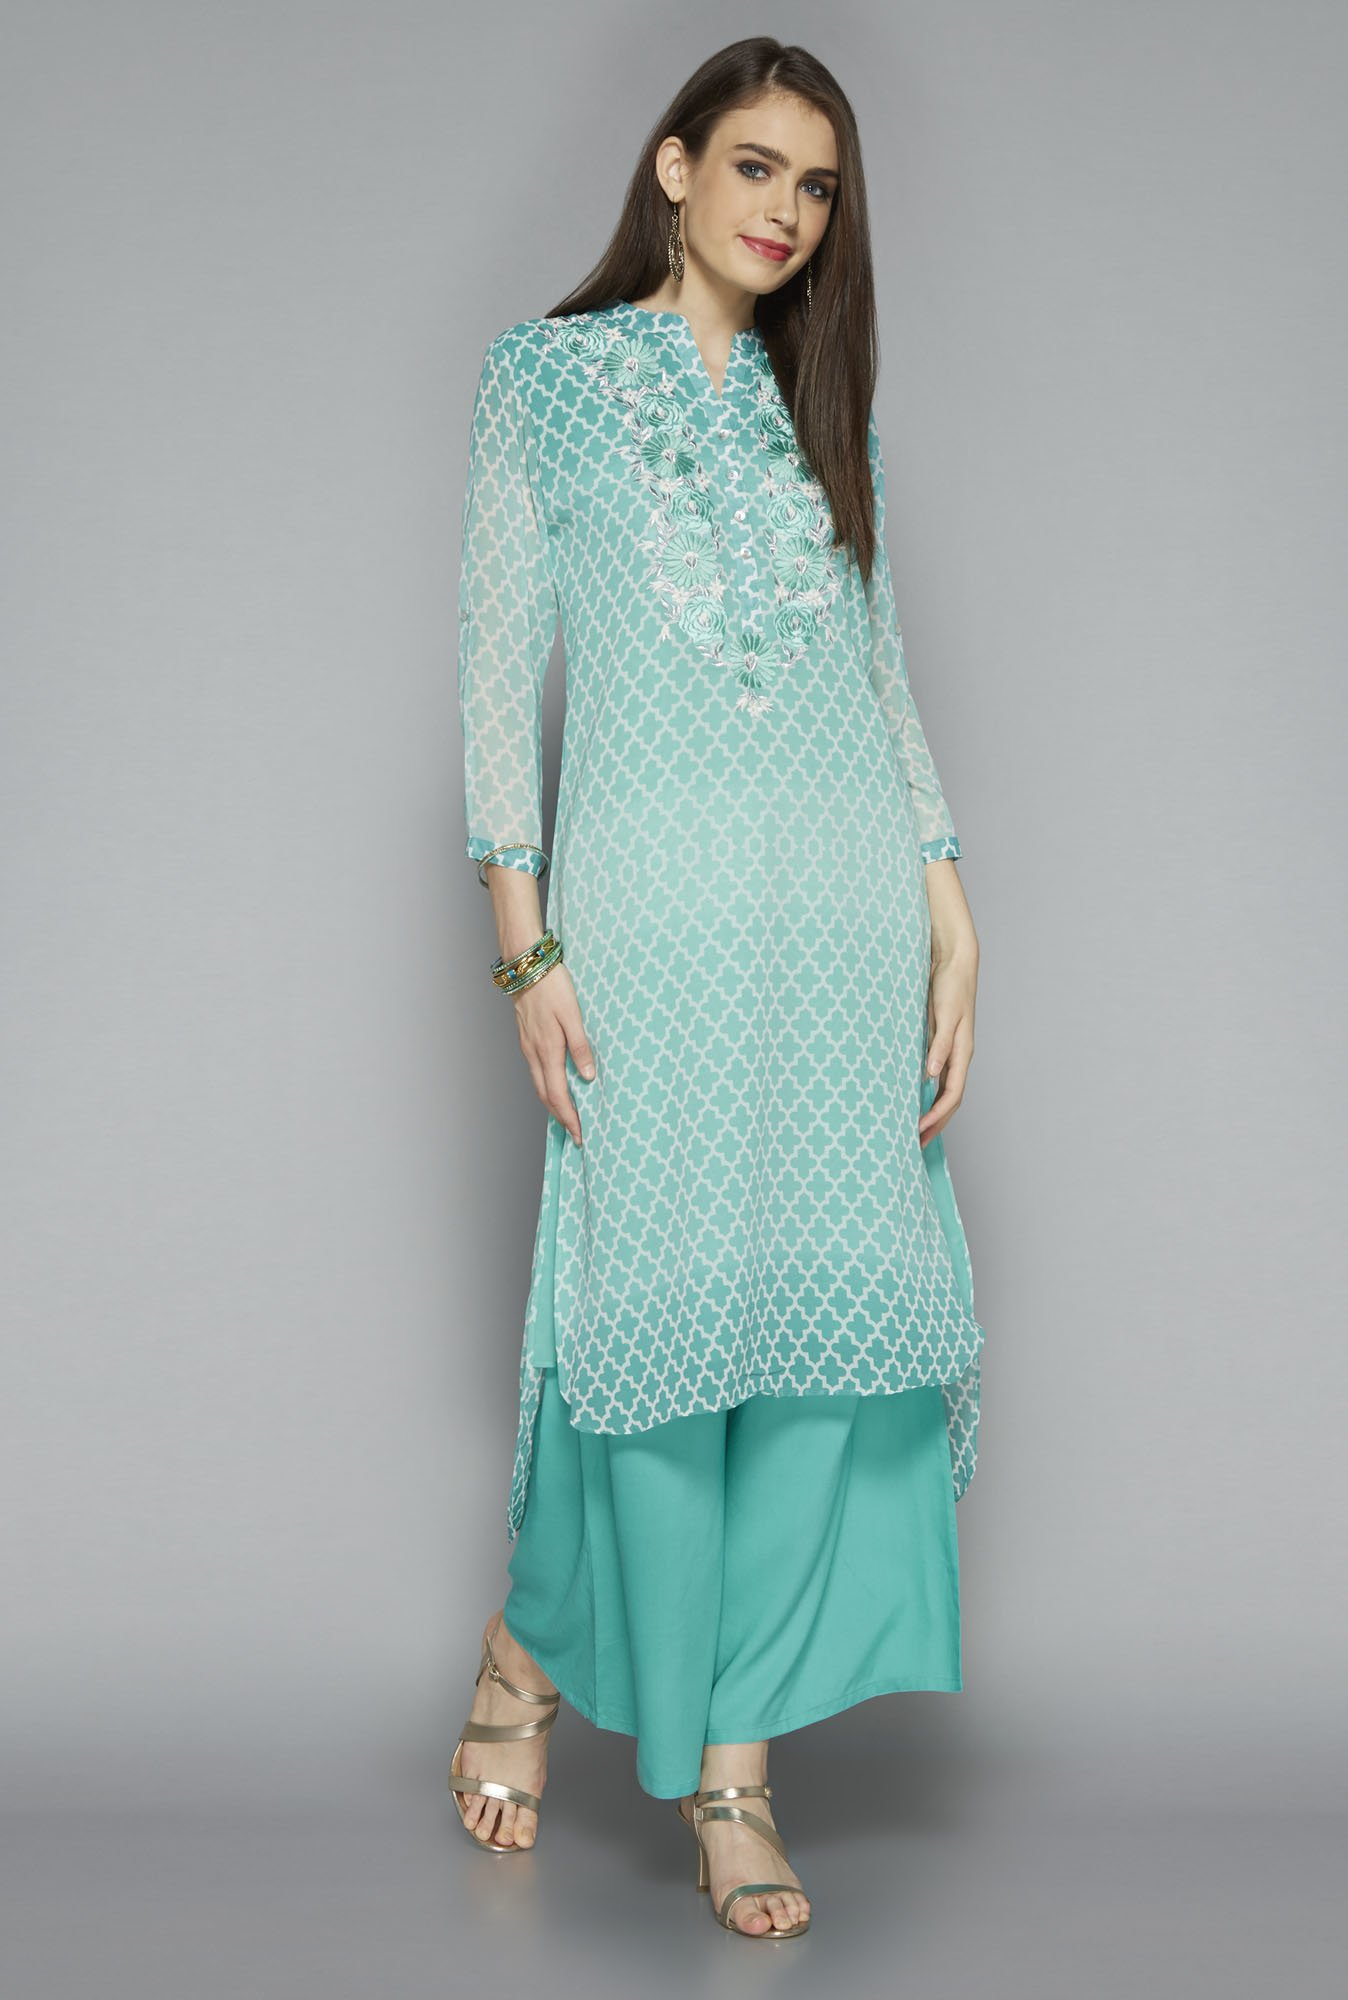 Buy Westside Women Clothing. Shop Kurta Kurtis Collection in India at venchik.ml ♥ Discounts ♥ FREE SHIPPING ♥ COD |